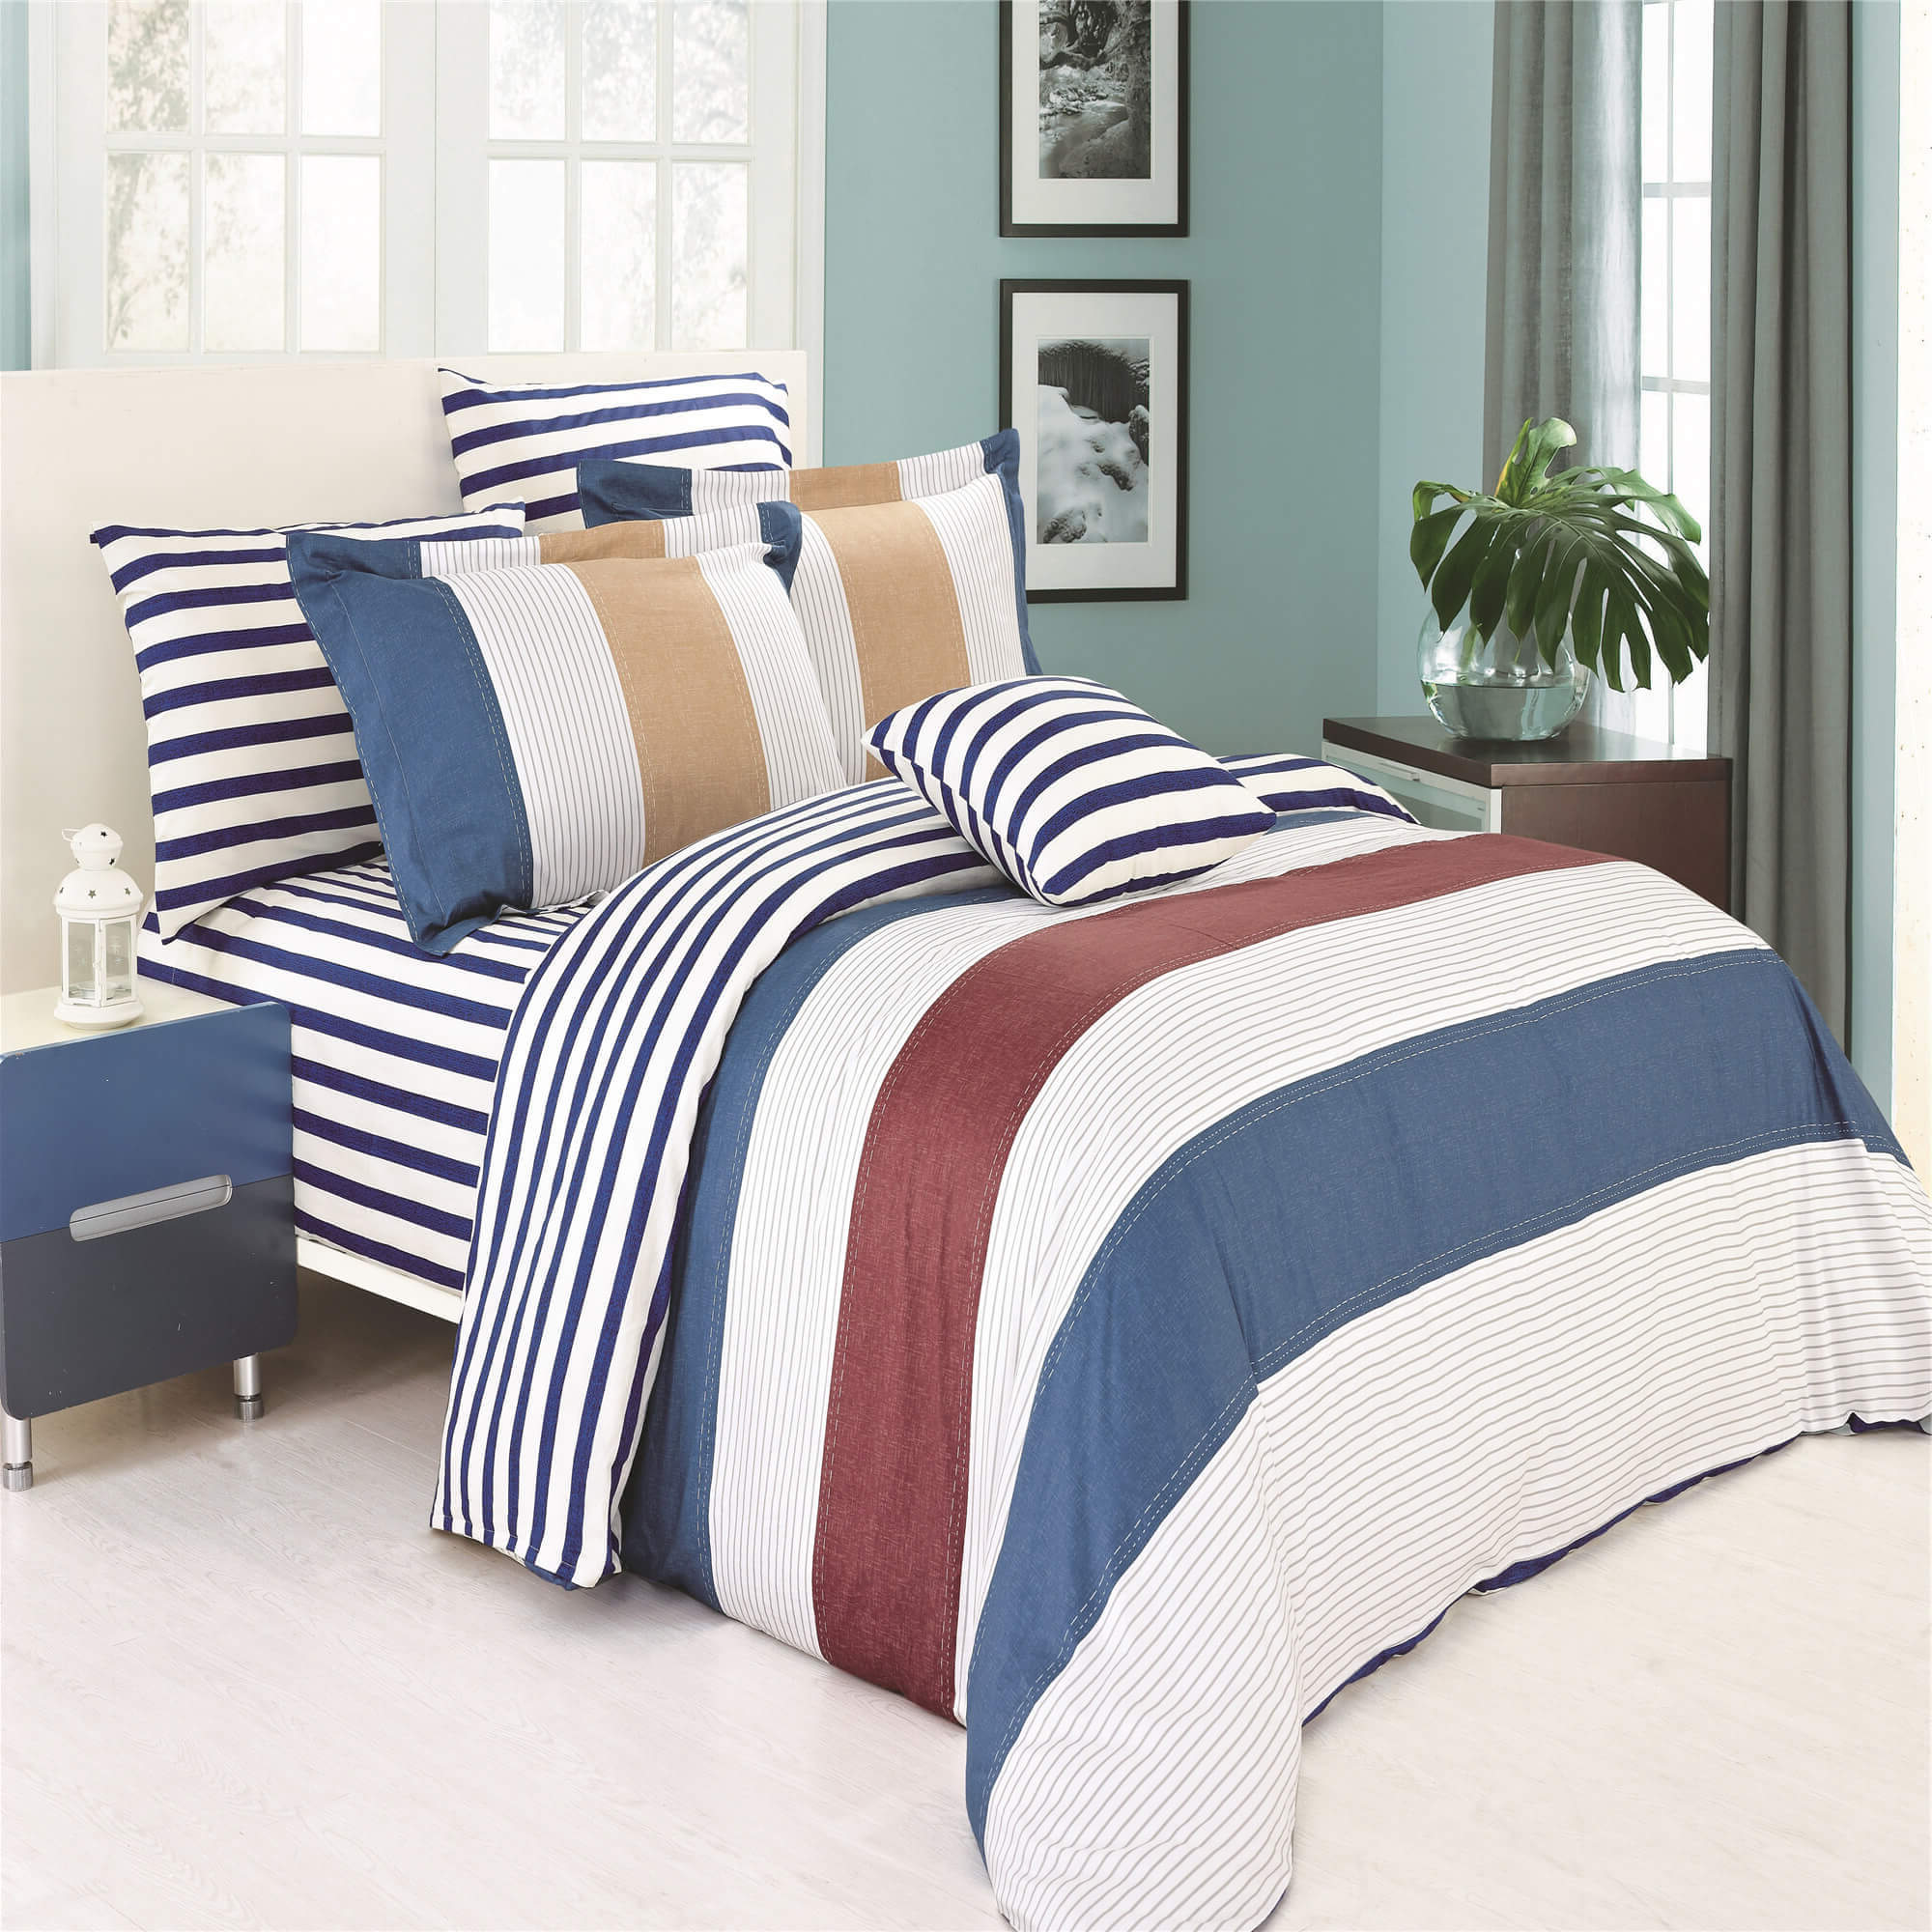 Midland Sheet Set